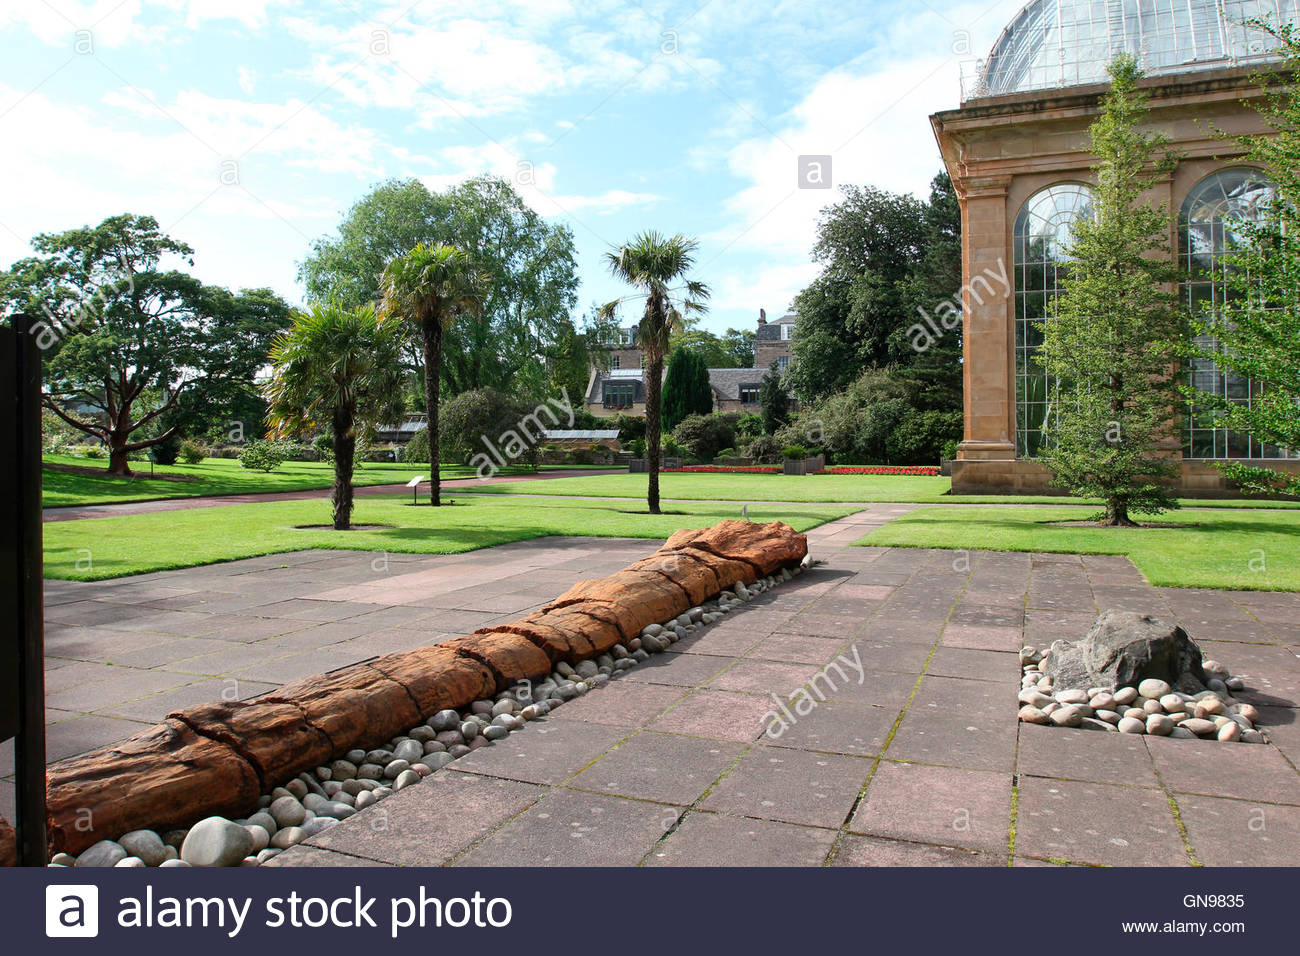 palm house at the royal botanic garden edinburgh, edinburgh, scotland, united kingdom - Stock Image